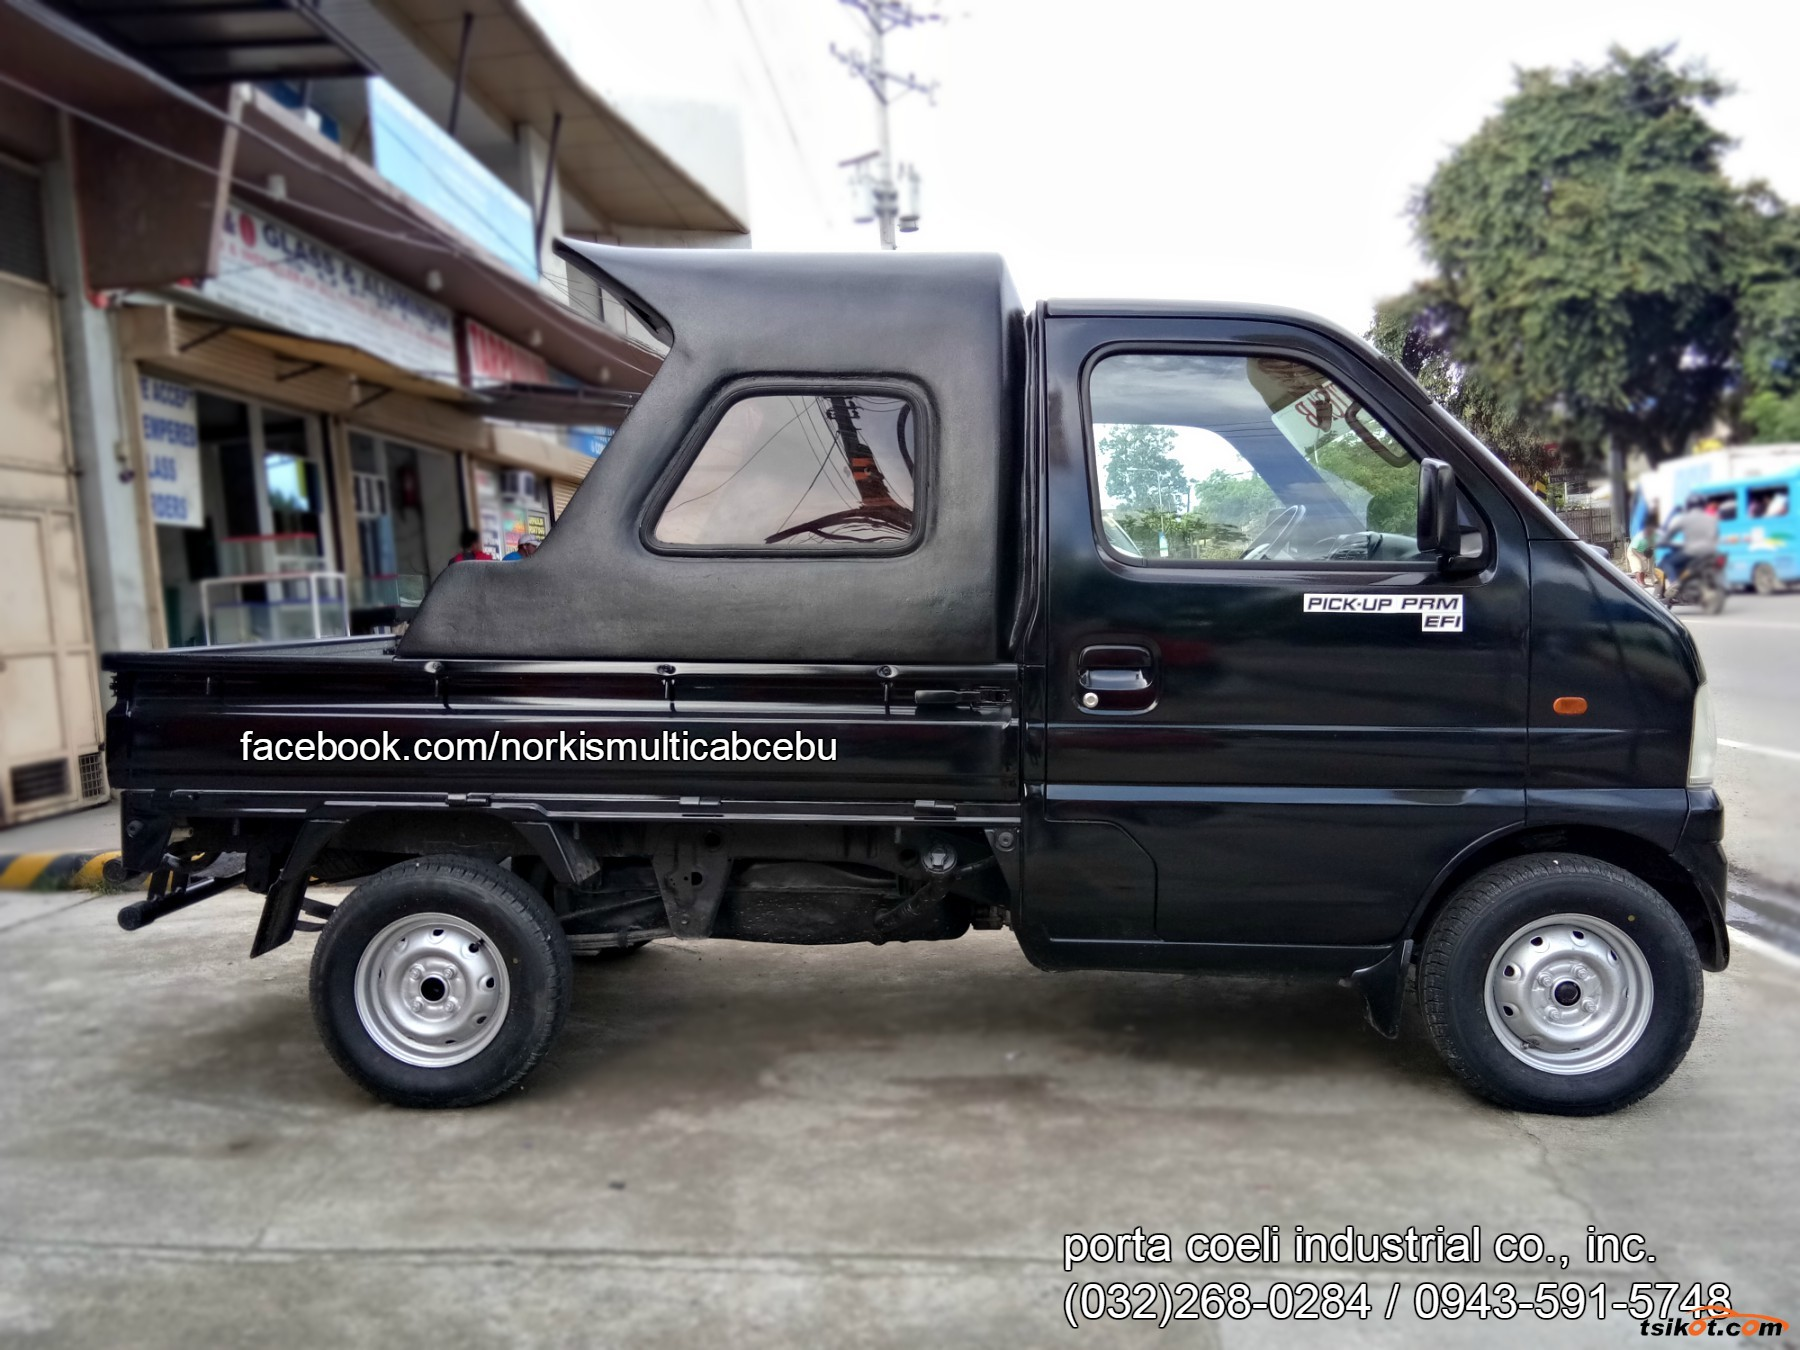 suzuki multi-cab 2017 - car for sale - cebu | tsikot #1